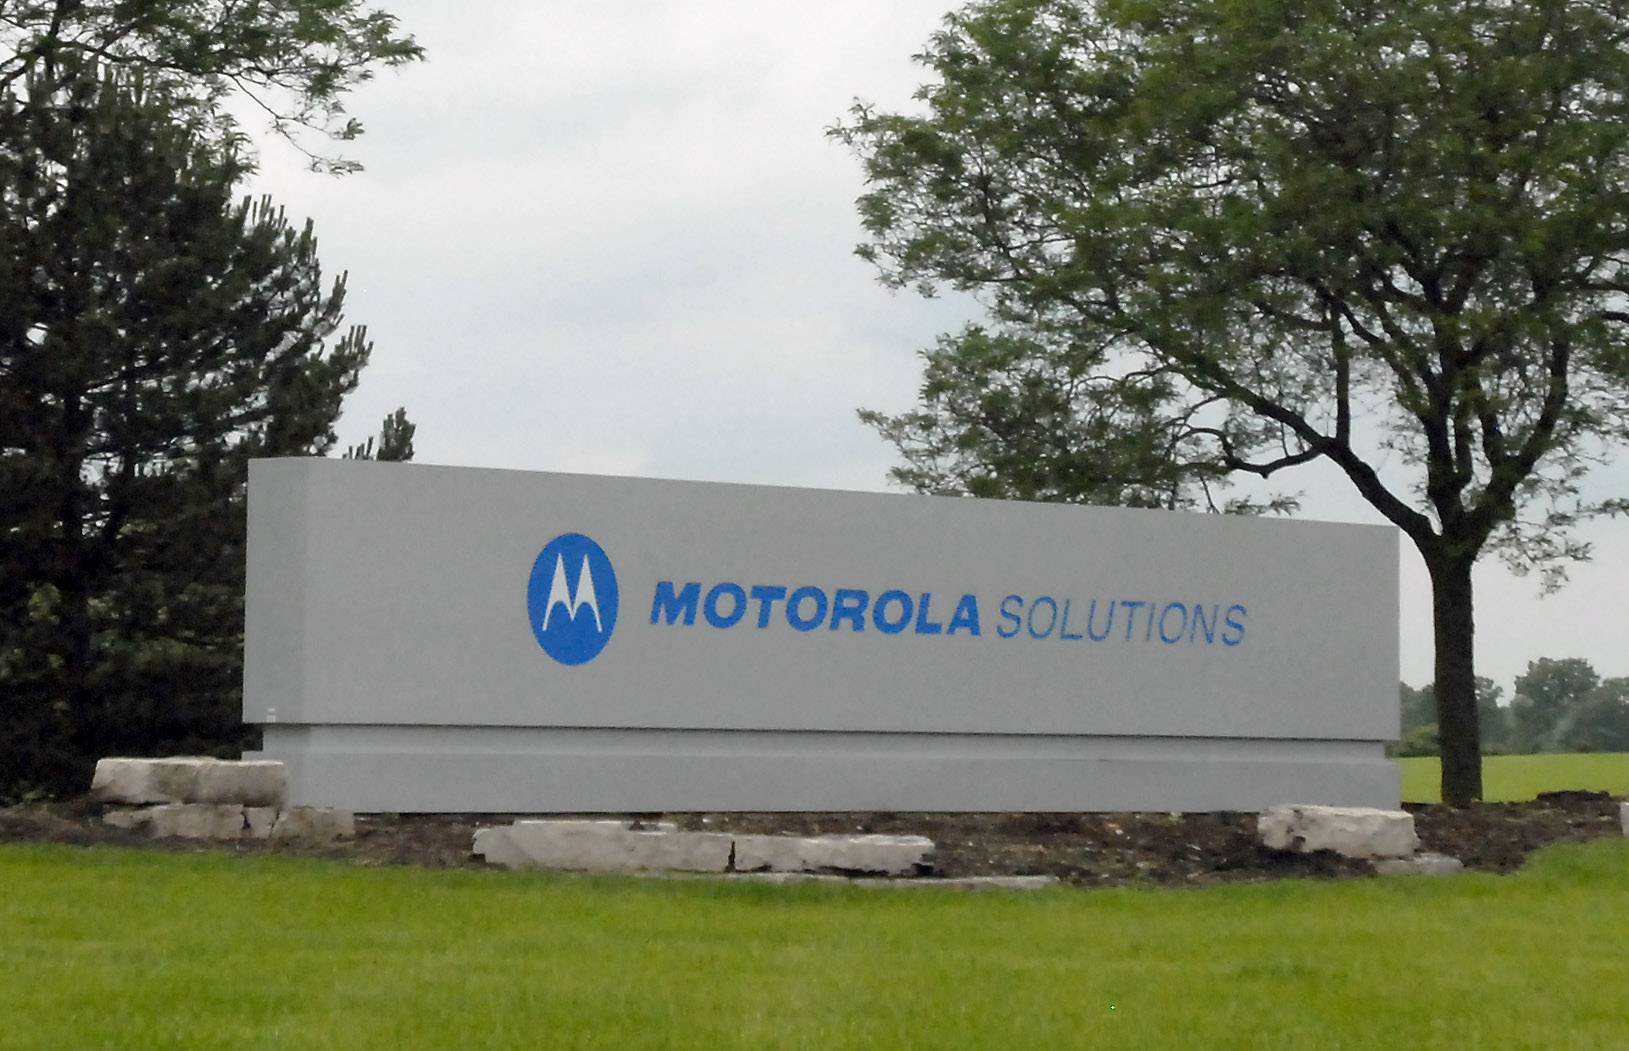 Chicago-based Motorola Solutions, which has offices in Schaumburg, has acquired Salt Lake City, Utah-based Spillman Technologies.